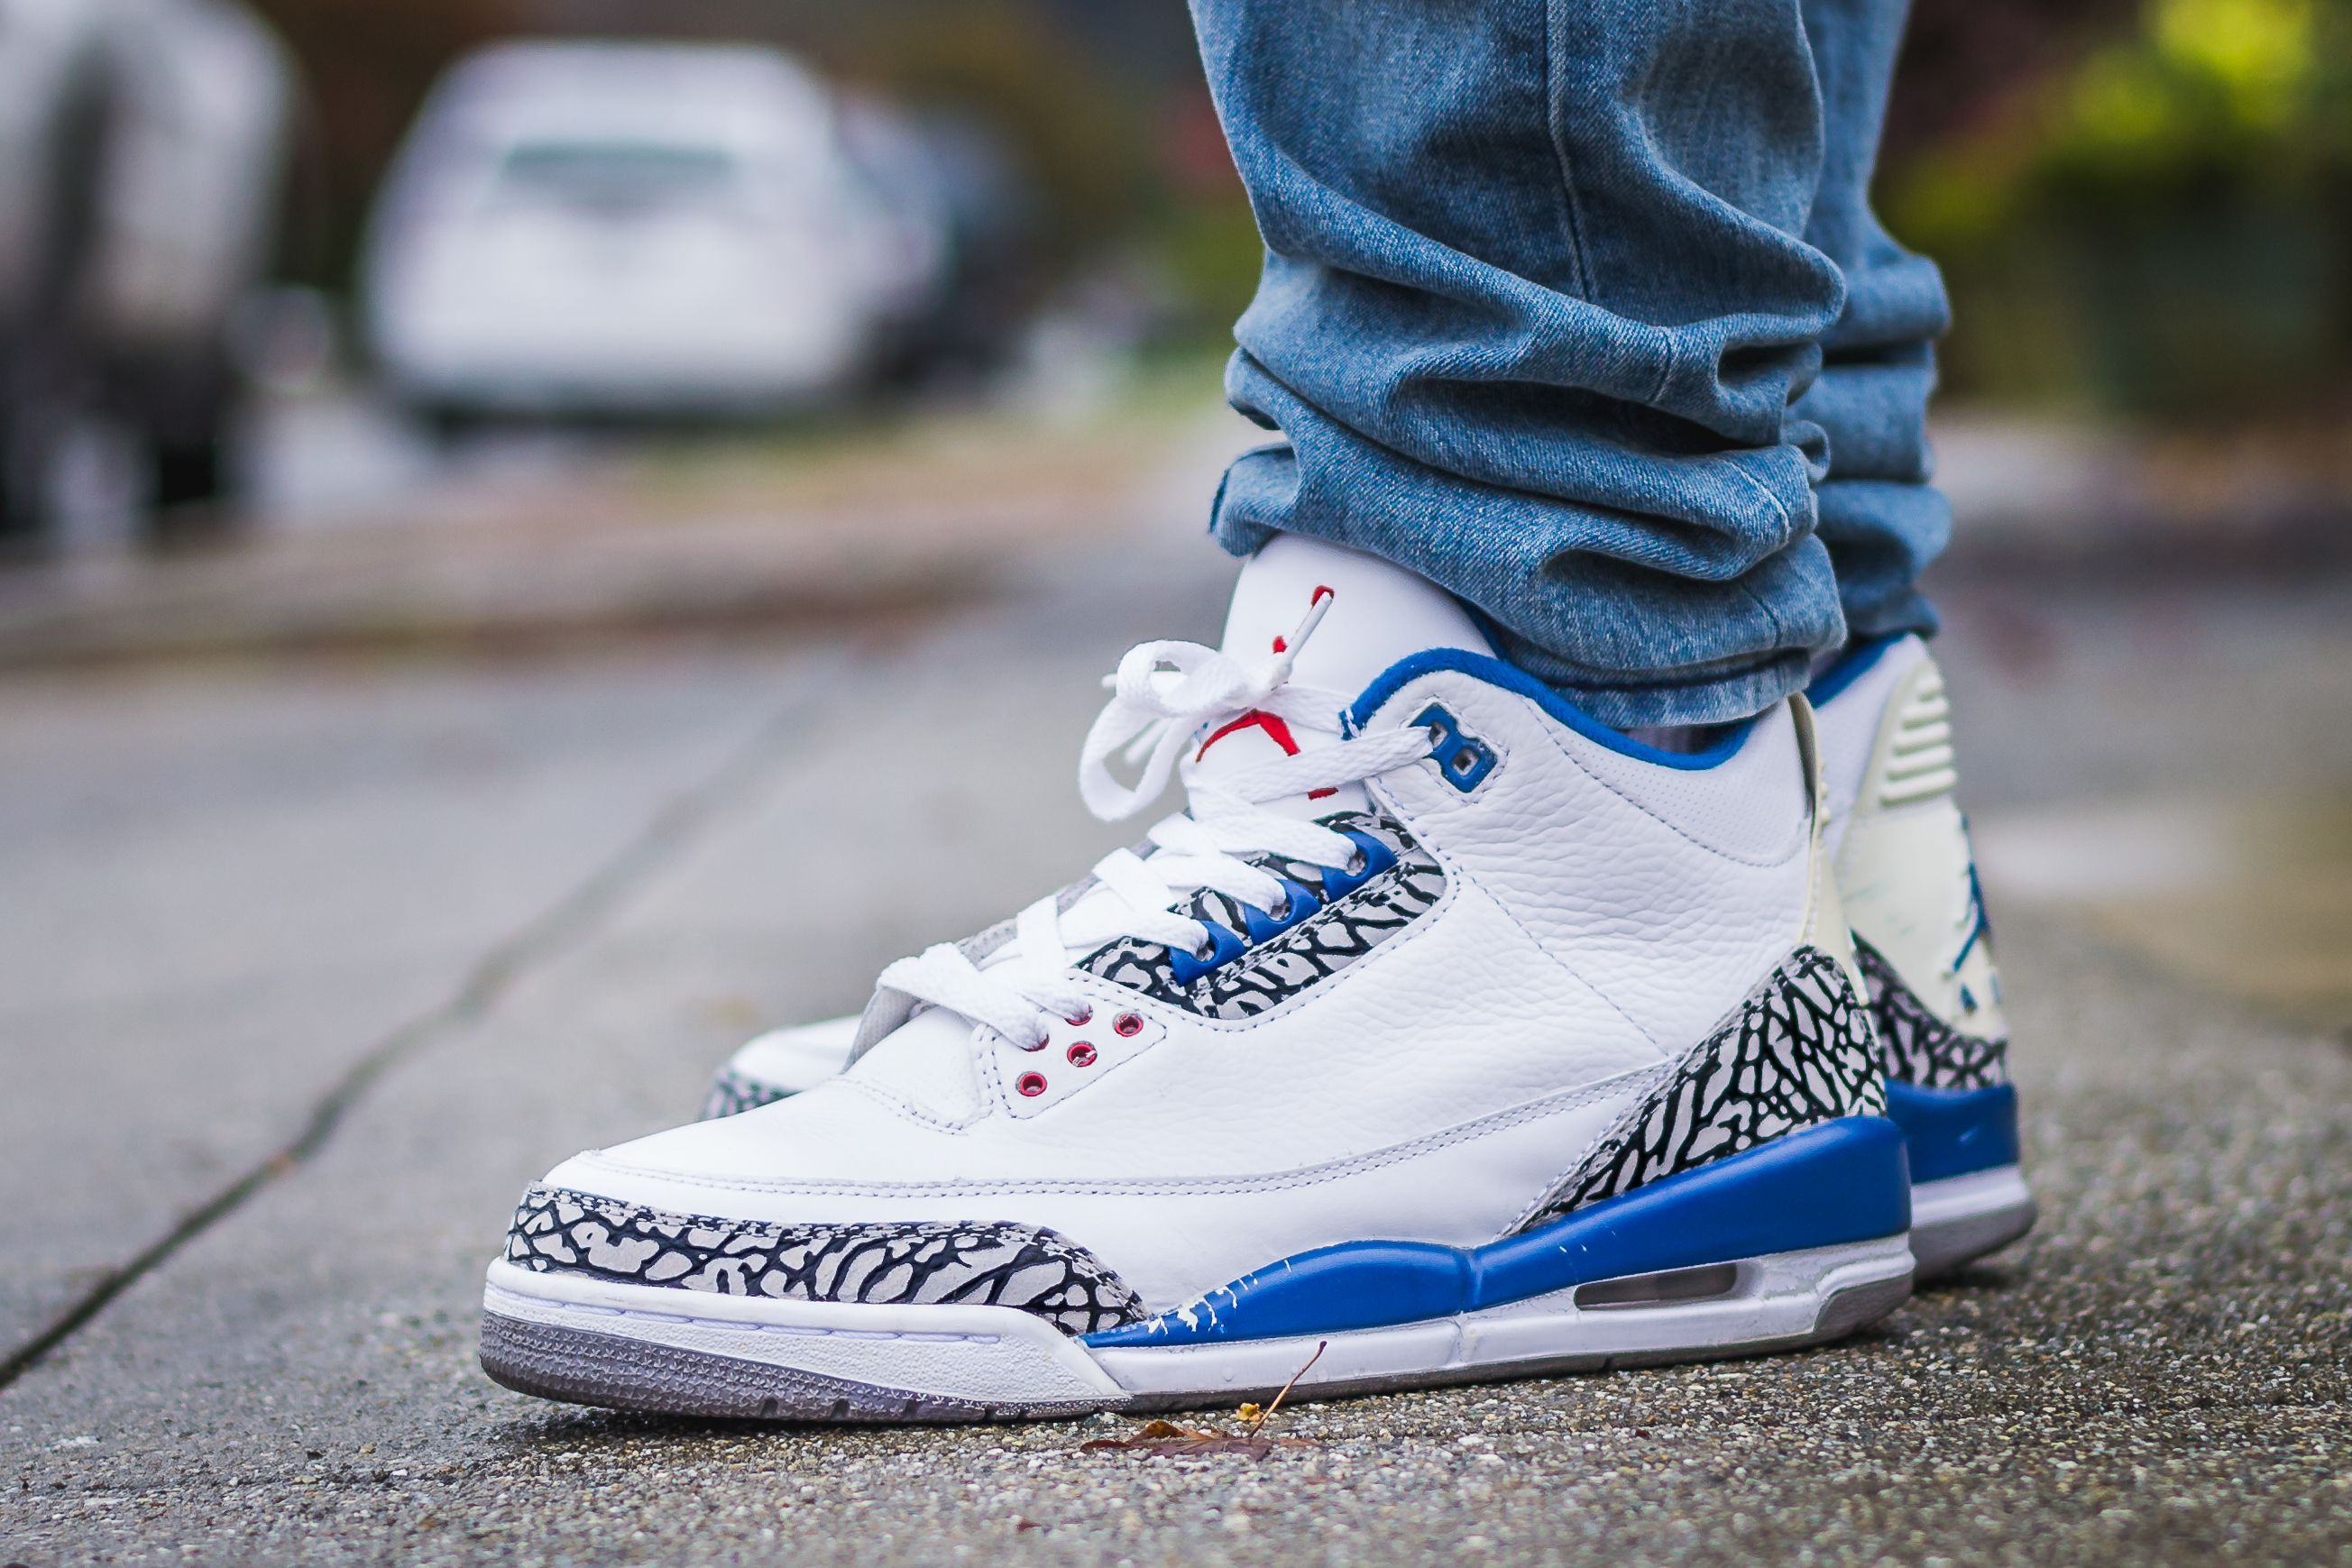 28e67490b71e38 WDIWT - See my on foot video review of these 2009 Air Jordan 3 True Blue +  where to find em